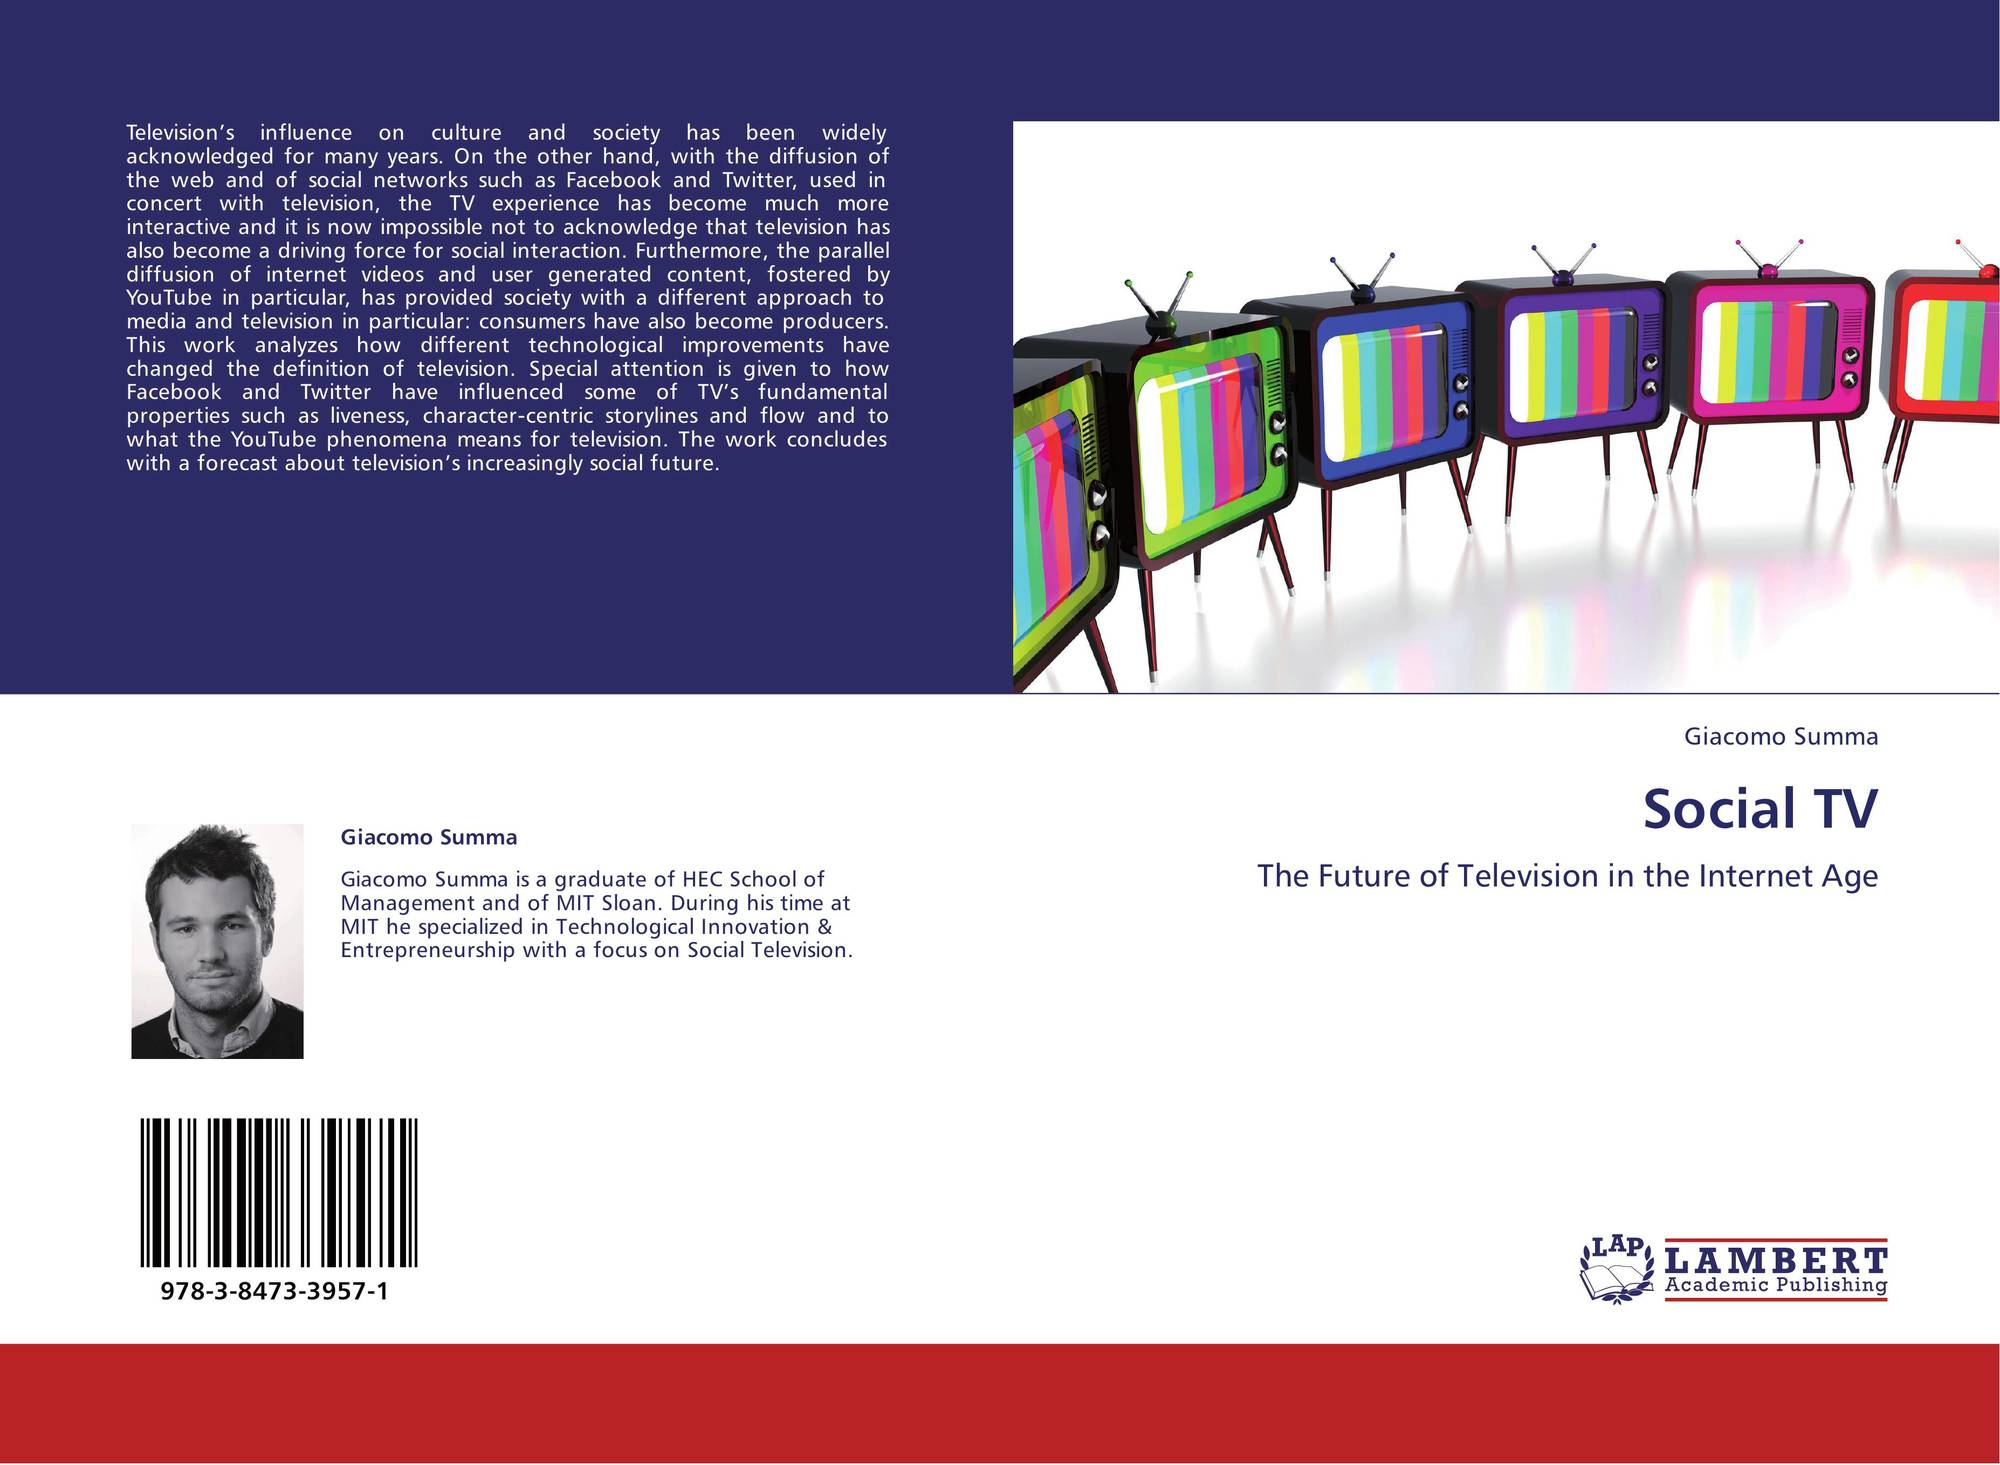 an analysis of the influence of televisions on scoety The analysis of the television shows and magazines occurred from january 2002 through april 2002 the adolescent life stage was chosen for analysis because it is a time when.